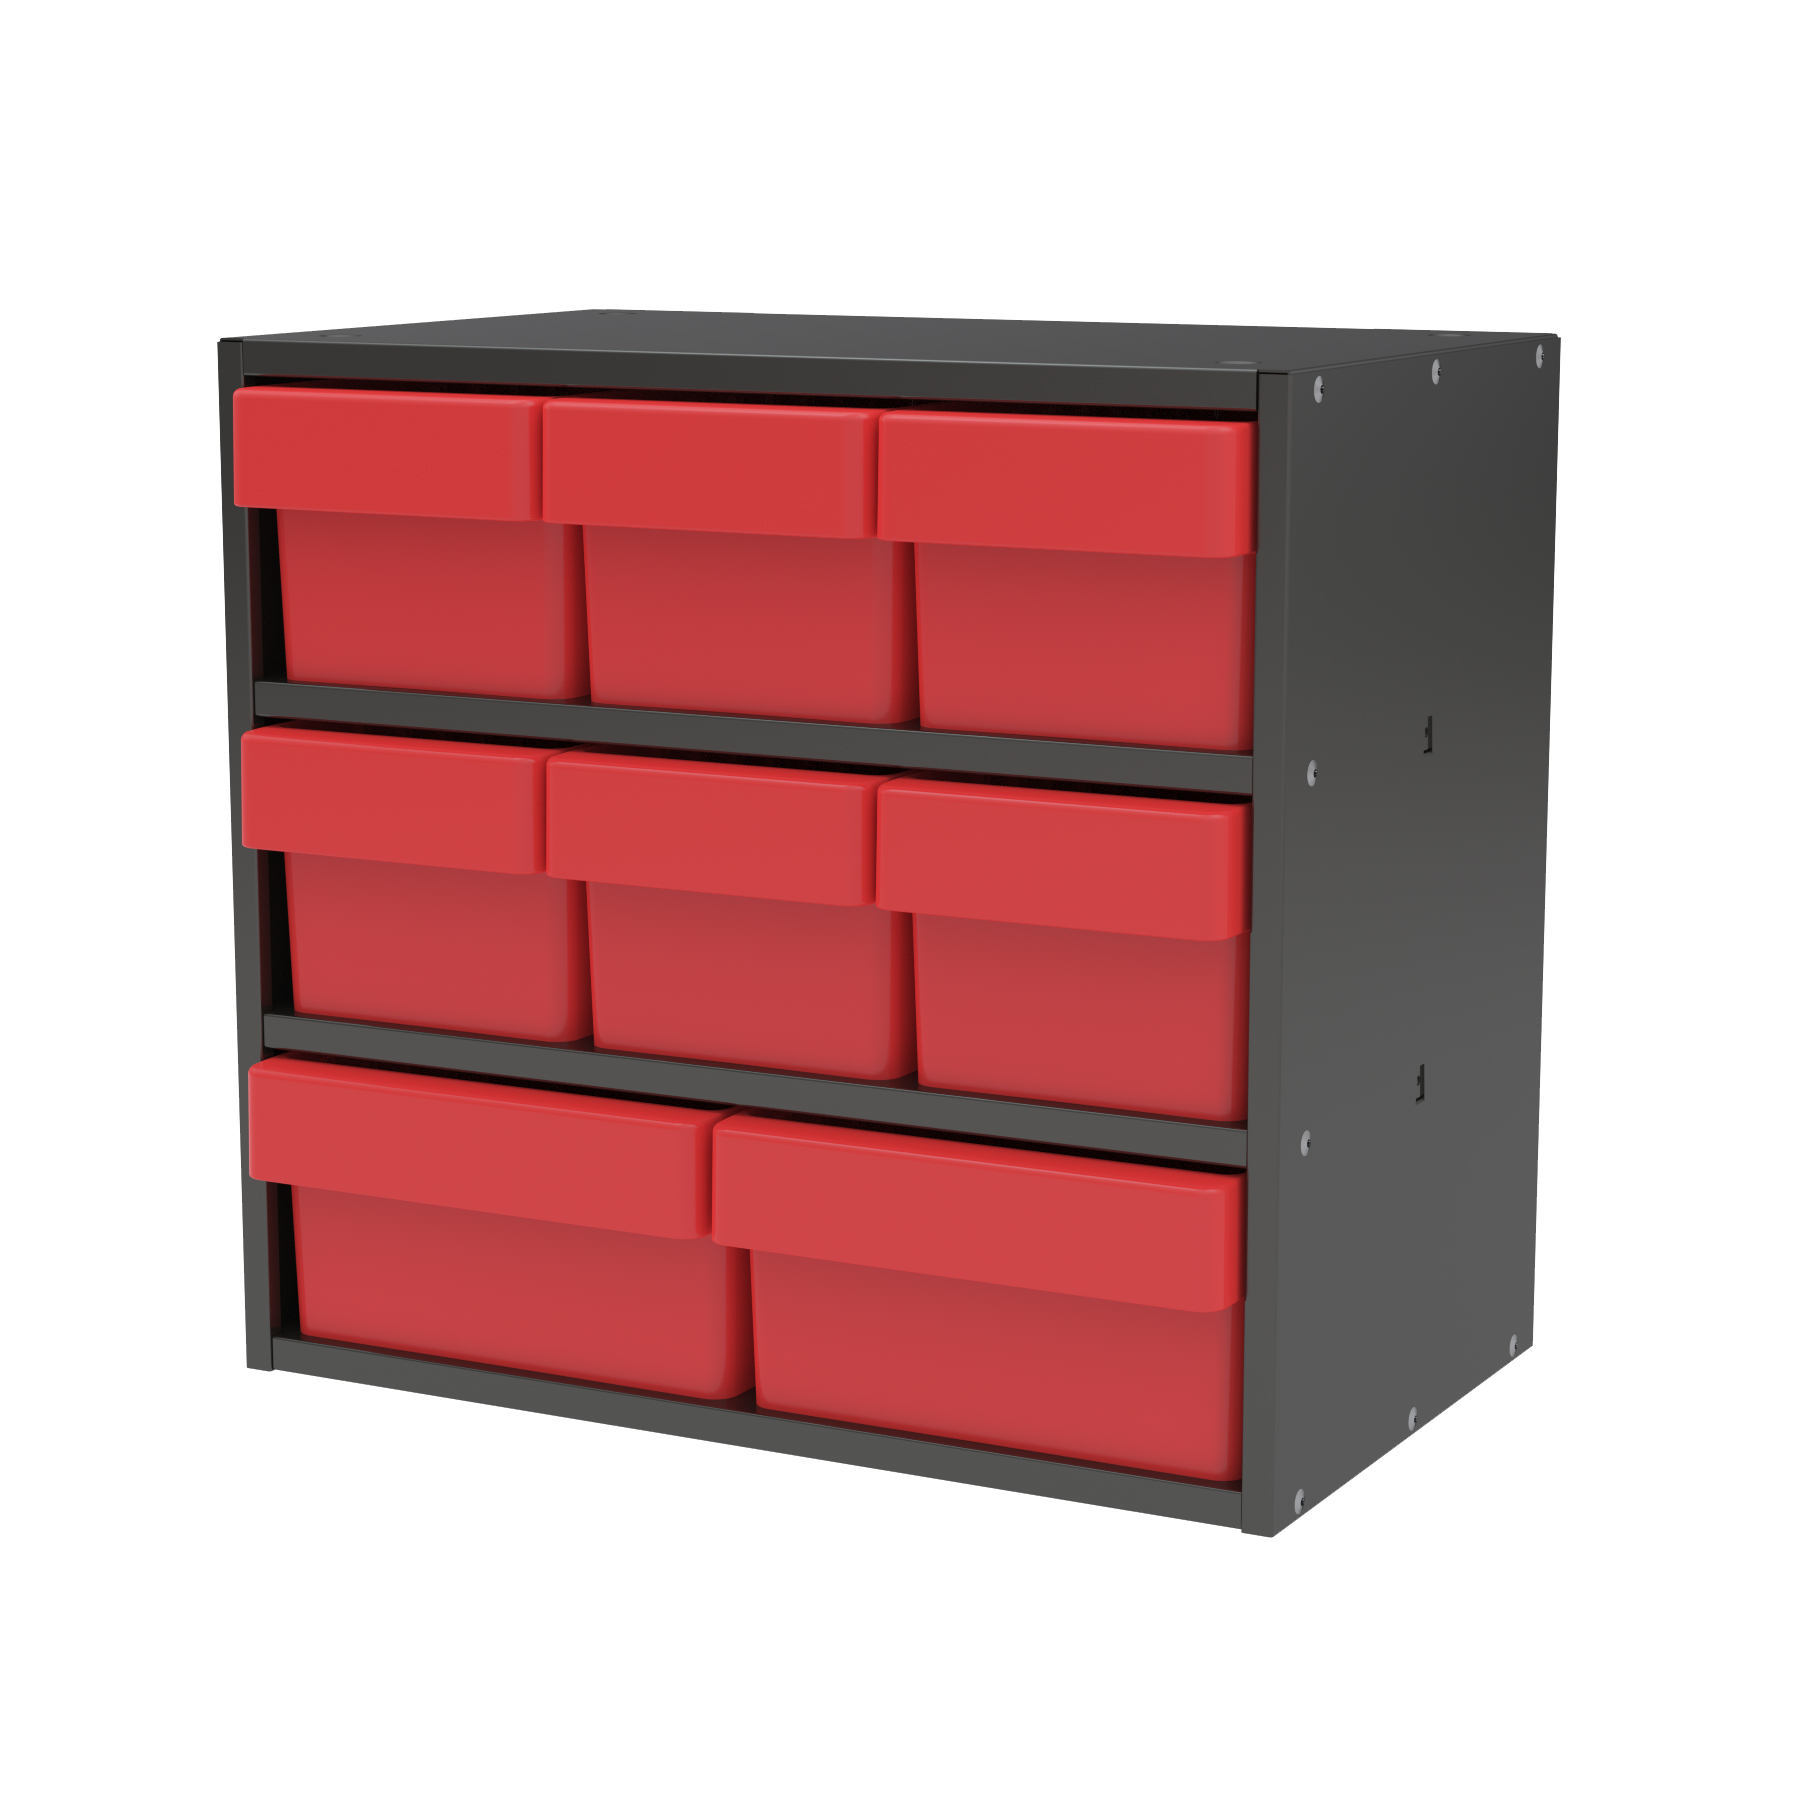 Item DISCONTINUED by Manufacturer.  Modular Cabinet, 18x11x16, 8 Drawers, Gray/Red (AD1811CASTRED).  This item sold in carton quantities of 1.